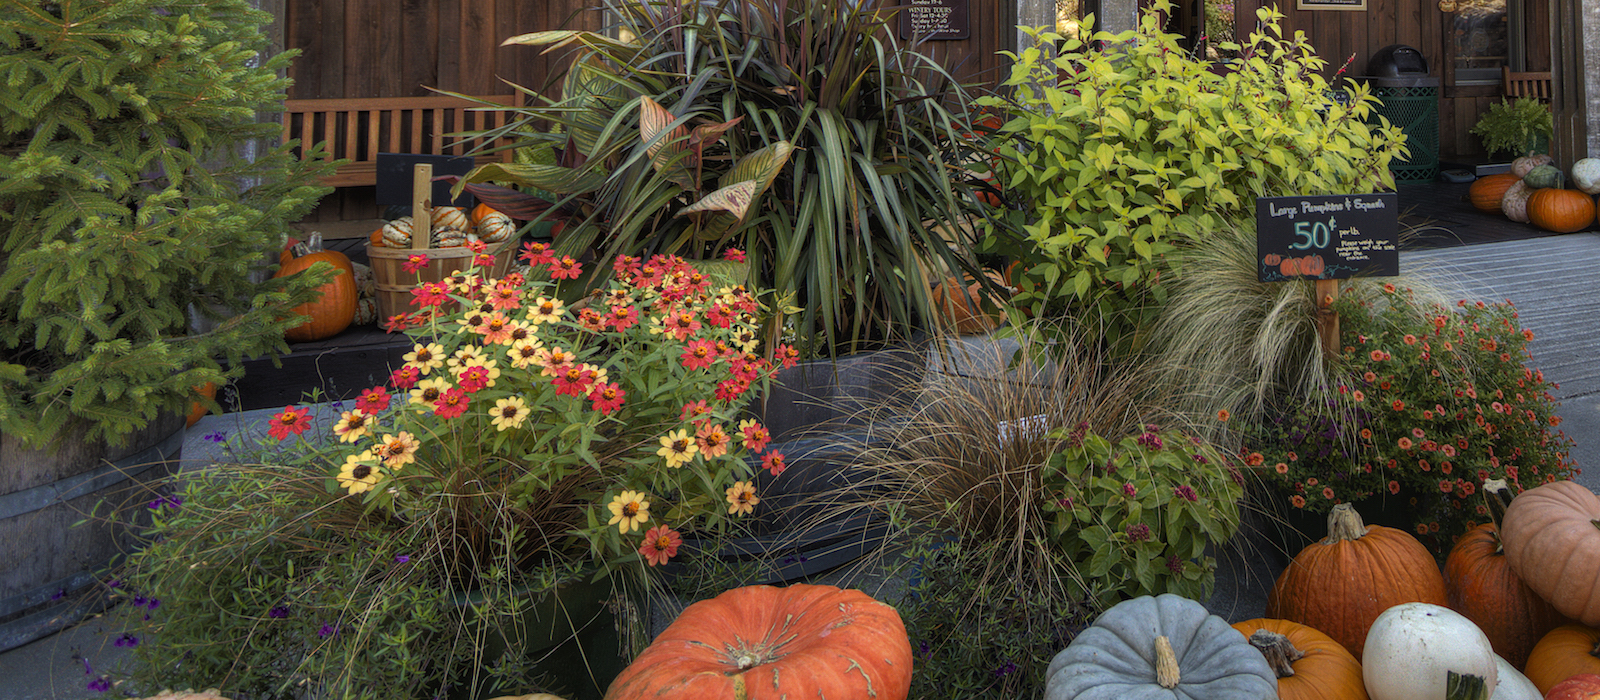 oliver winery events ornamental container garden workshop